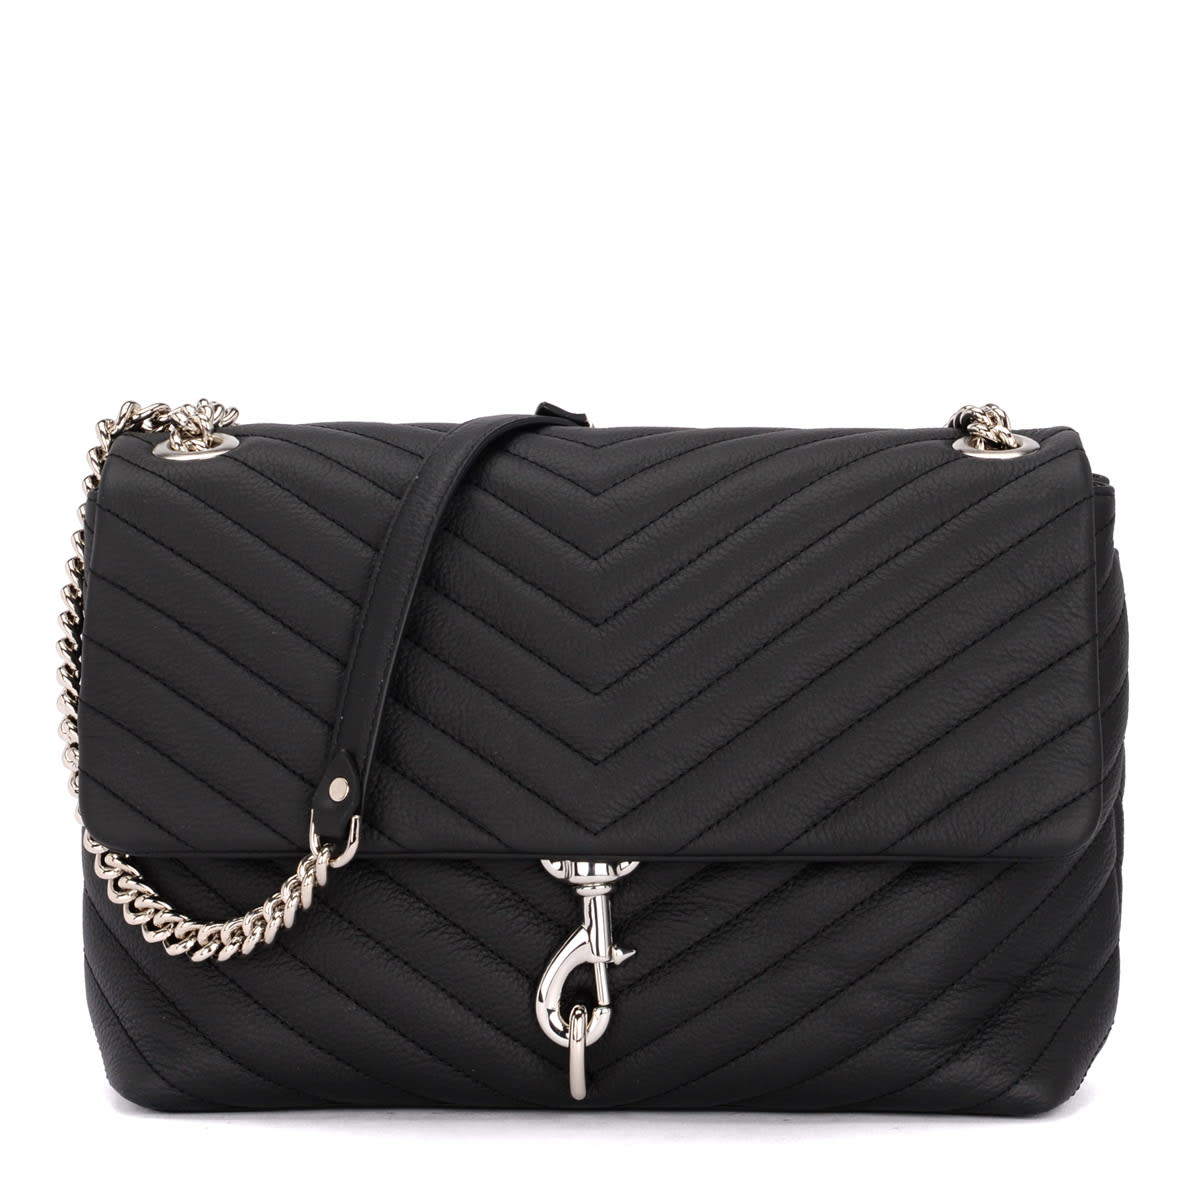 69cea2a09 Rebecca Minkoff Edie Flap Black Quilted Leather Shoulder Bag - NERO ...